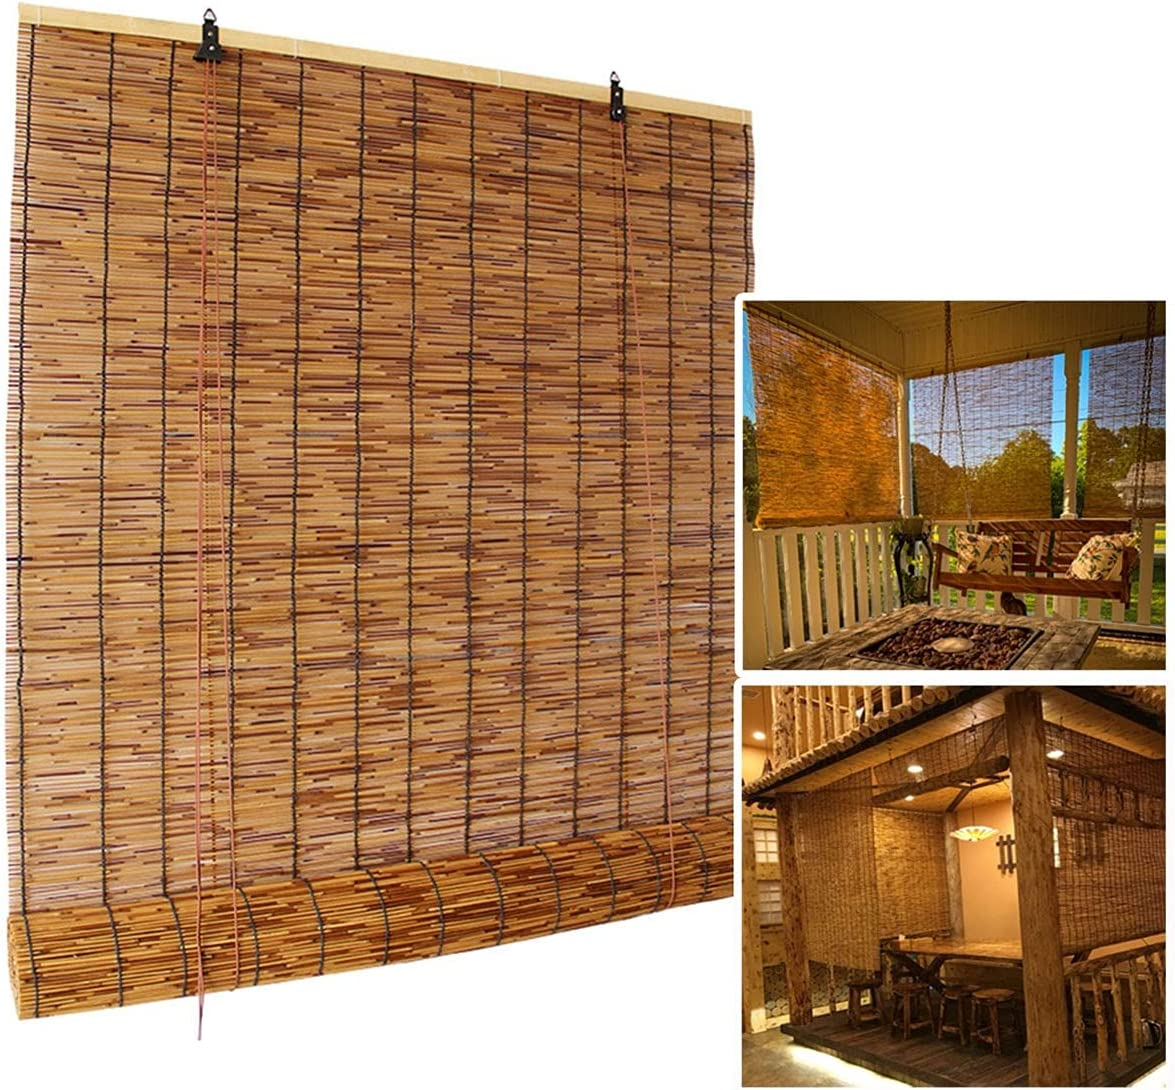 Doovin Reed Roller Blinds for Bamboo Up Decoration Quantity limited Miami Mall Window Roll